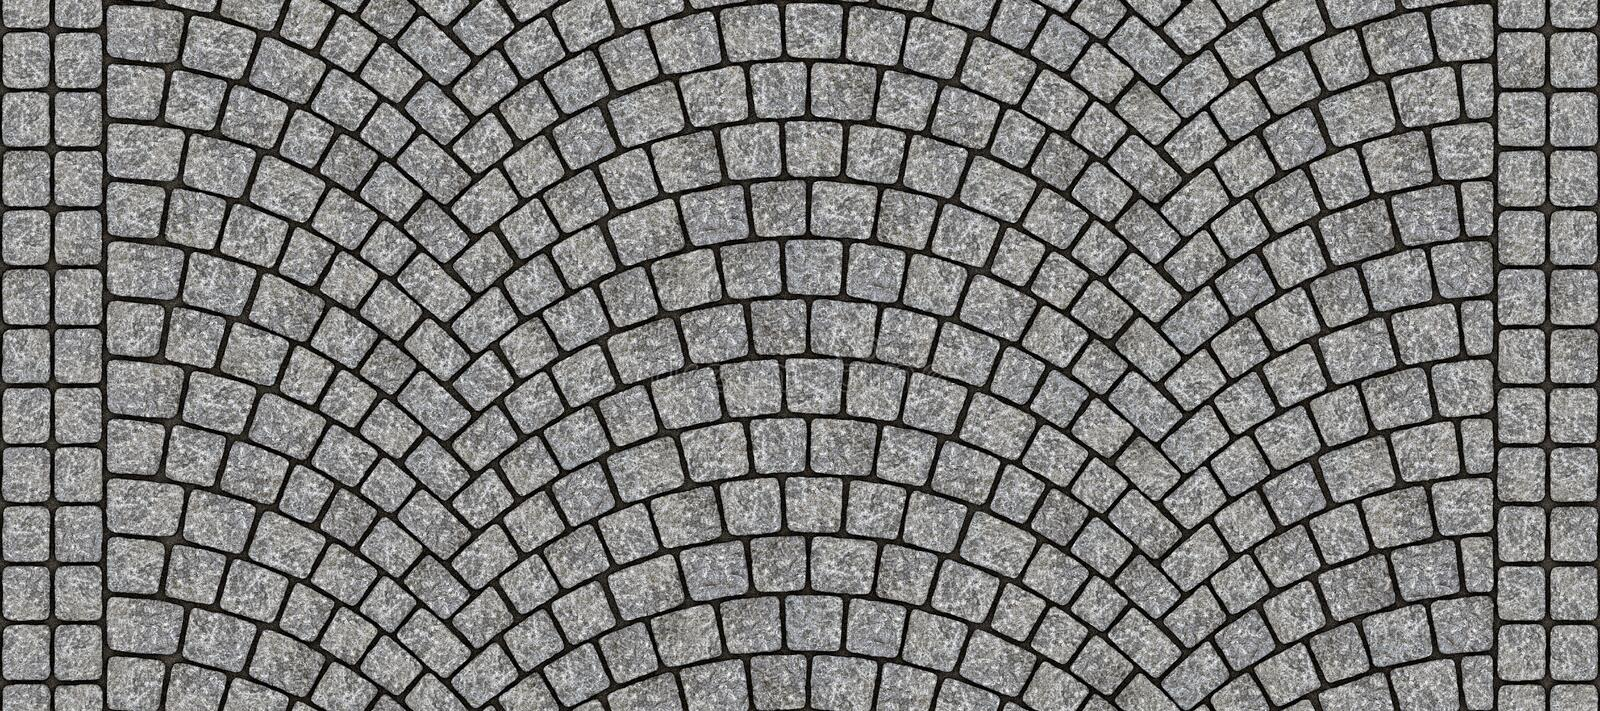 Road curved cobblestone texture 012. Cobblestone arched pavement road with edge courses at the sidewalk. Seamless tileable repeating 3D rendering texture royalty free illustration